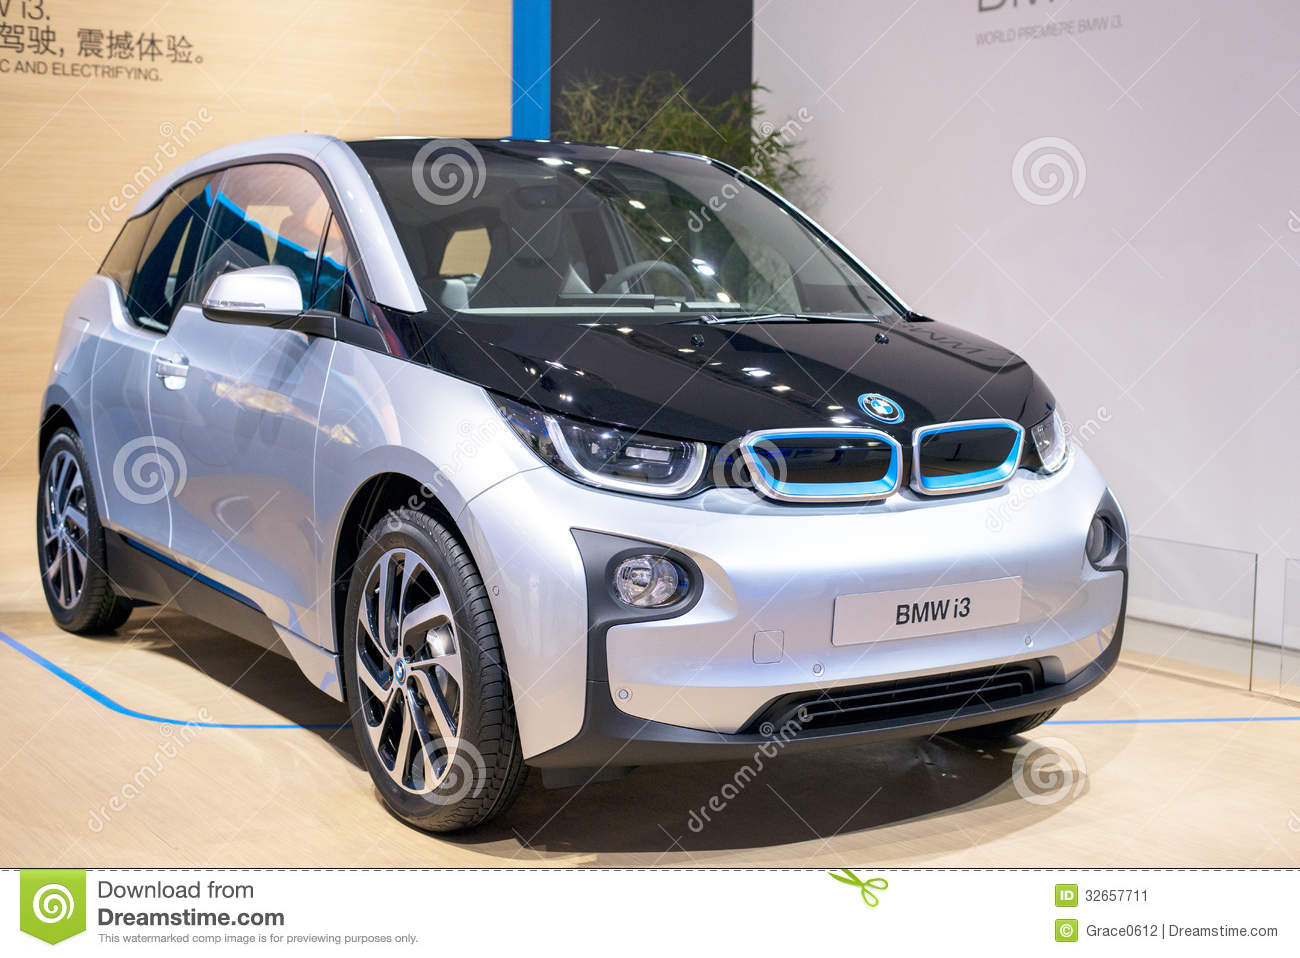 de elektrische auto van bmw i3 redactionele foto. Black Bedroom Furniture Sets. Home Design Ideas